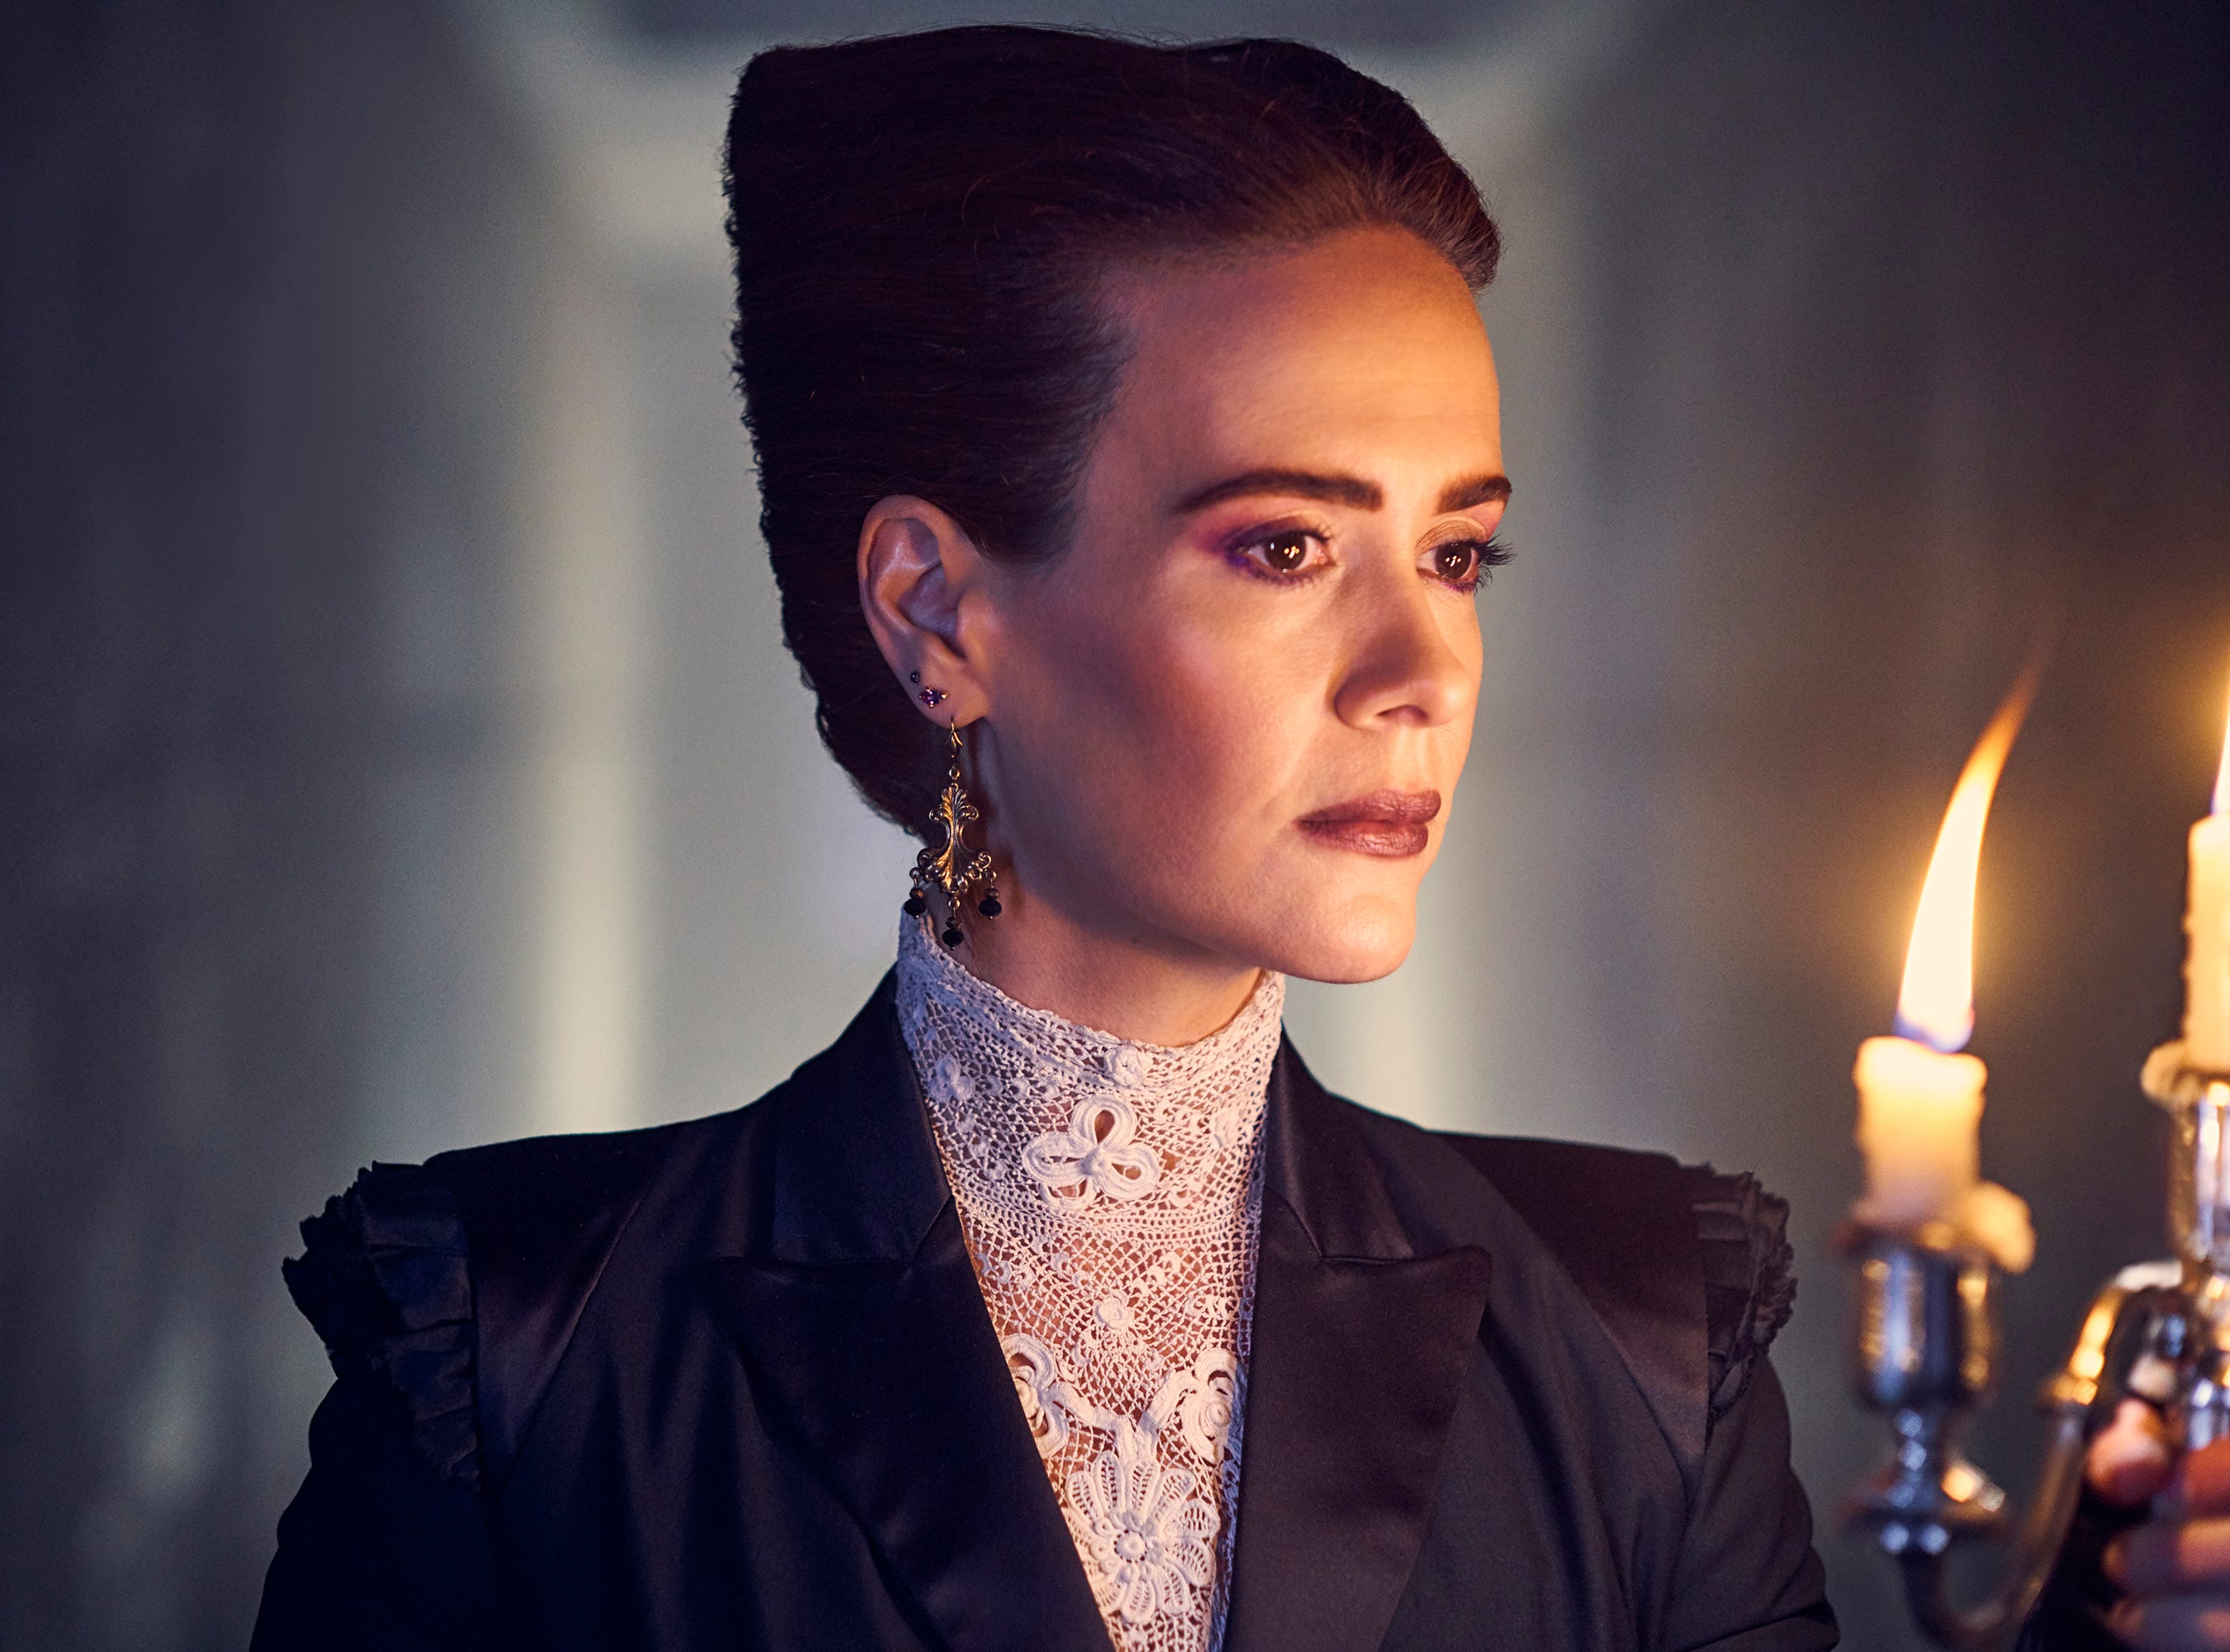 "The anthology horror series ""American Horror Story"" is in its eighth season with Sarah Paulson once again returning in a lead role. Each season, the show tackles new eras or new places while maintaining a high spooky factor with some seasons inspired by real events."